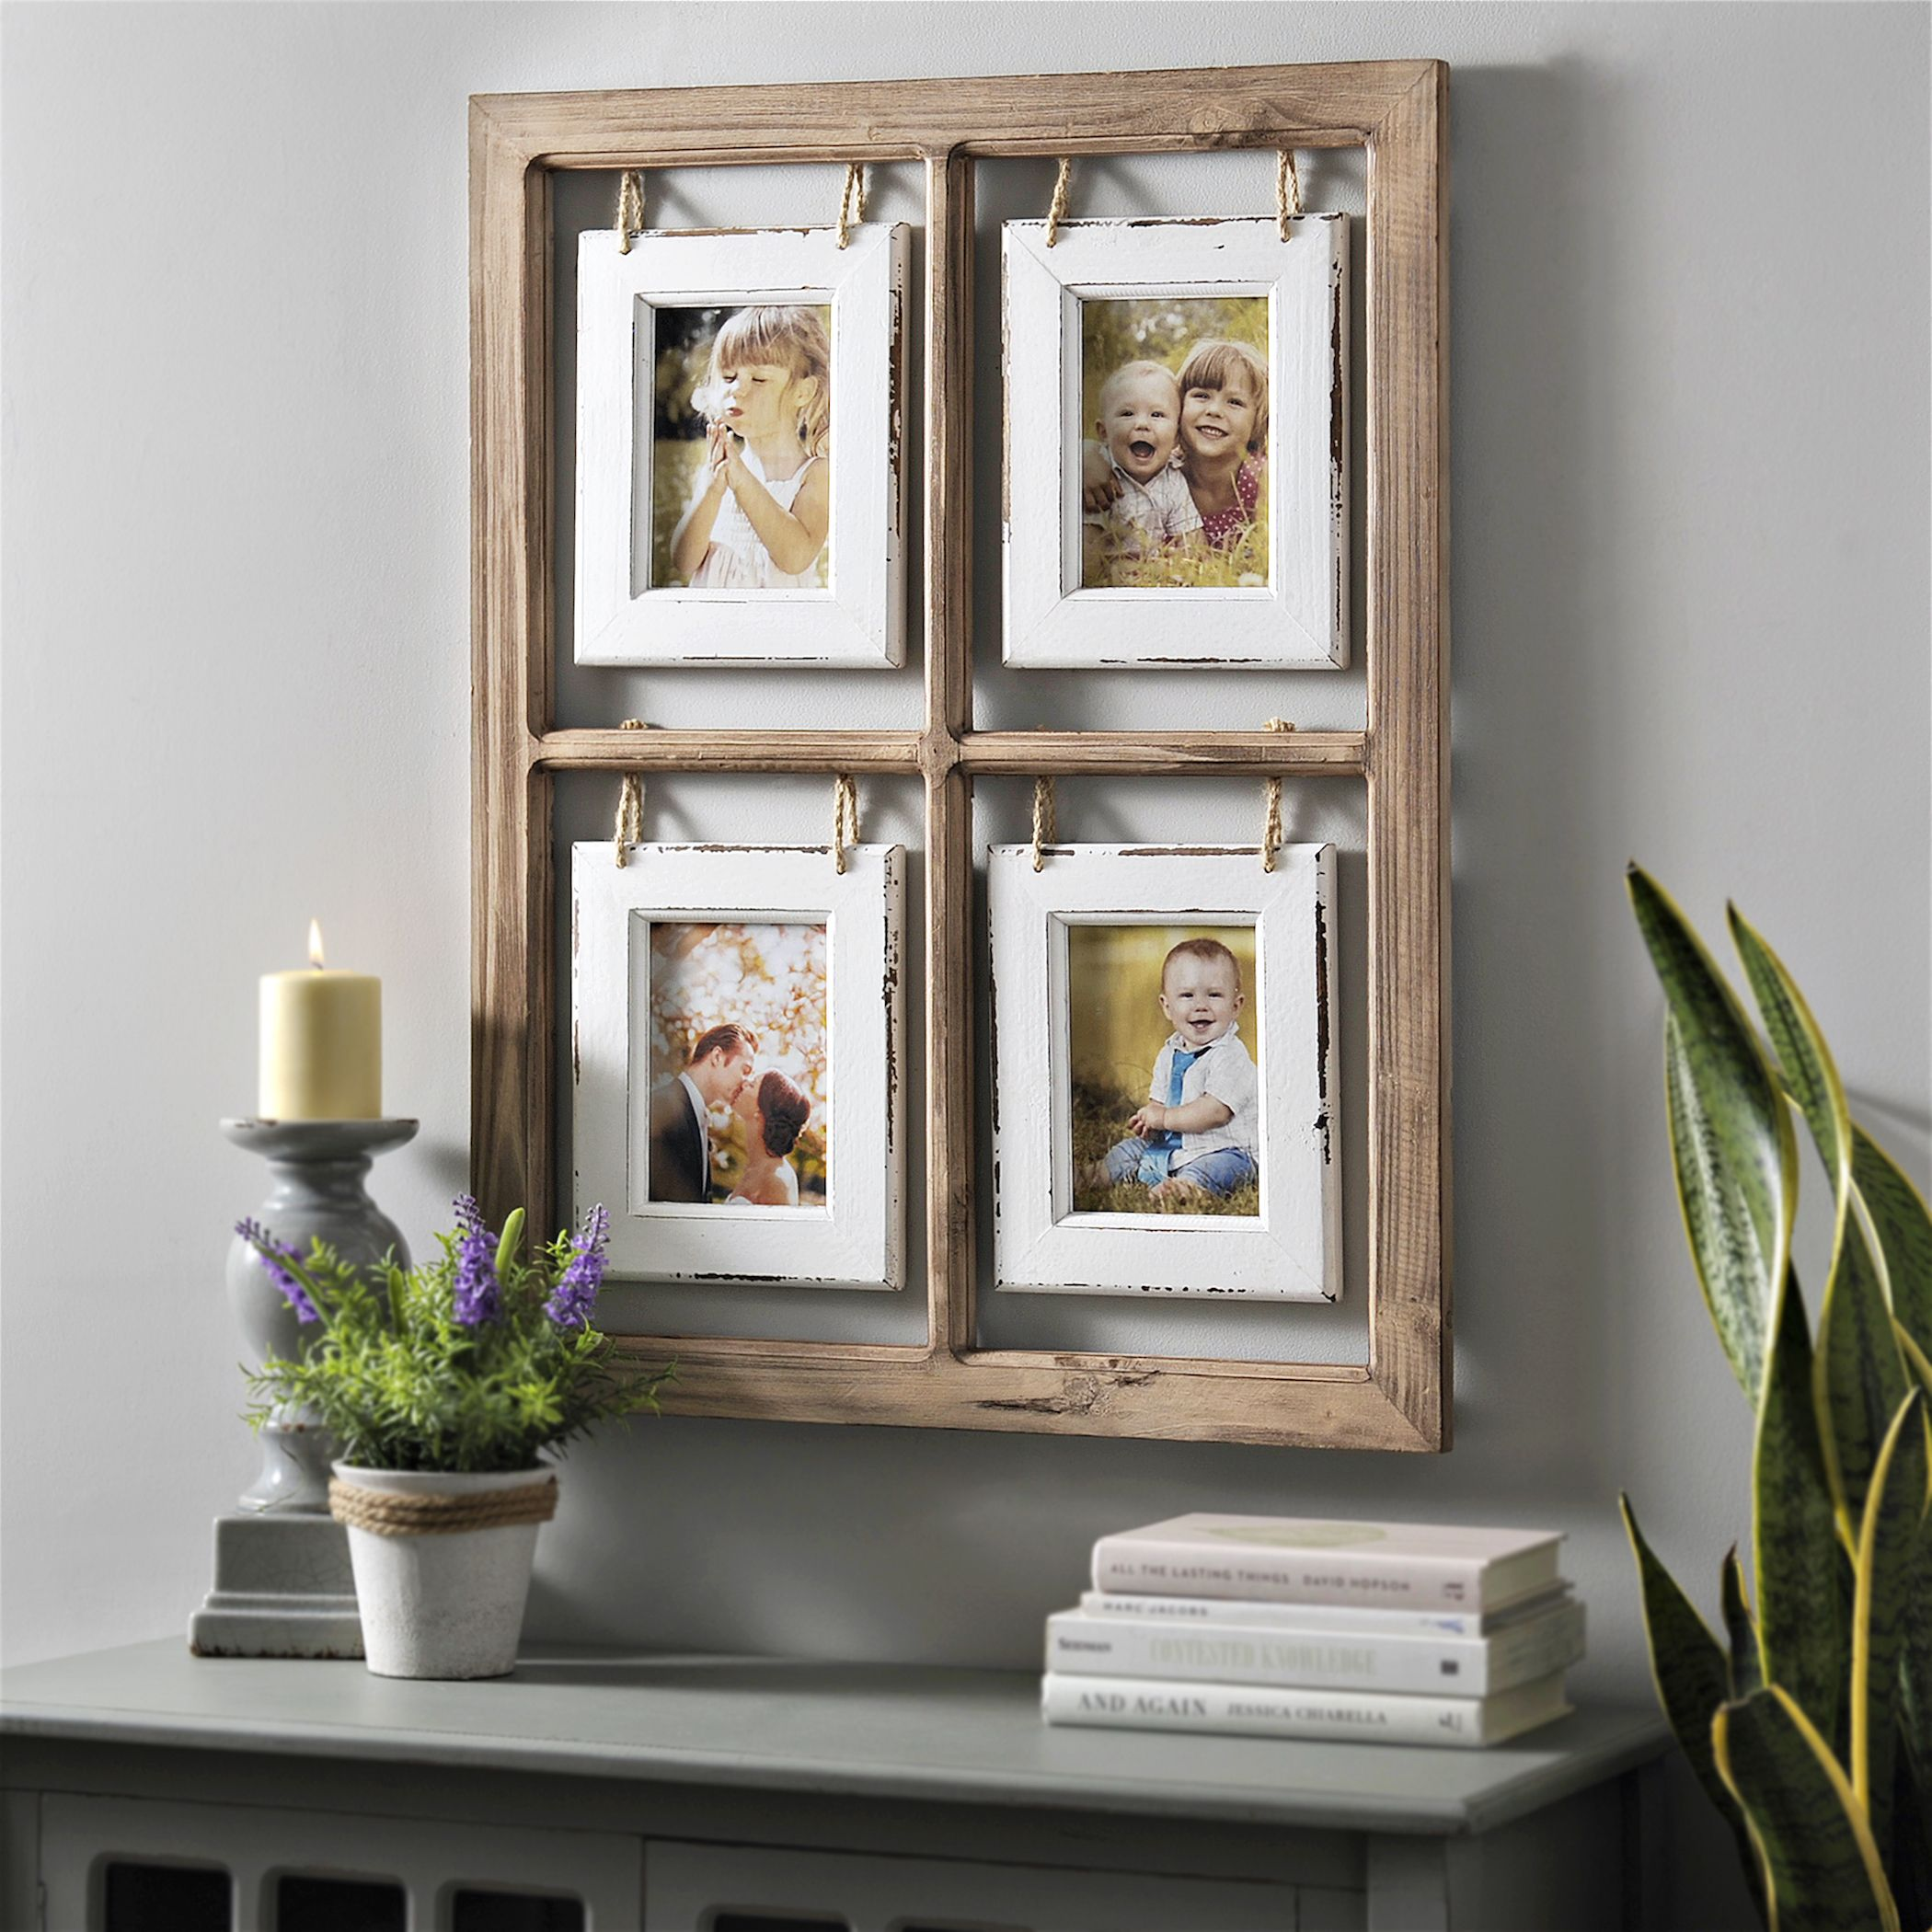 Make Your Family Photos Pop With The Natural Hanging Window